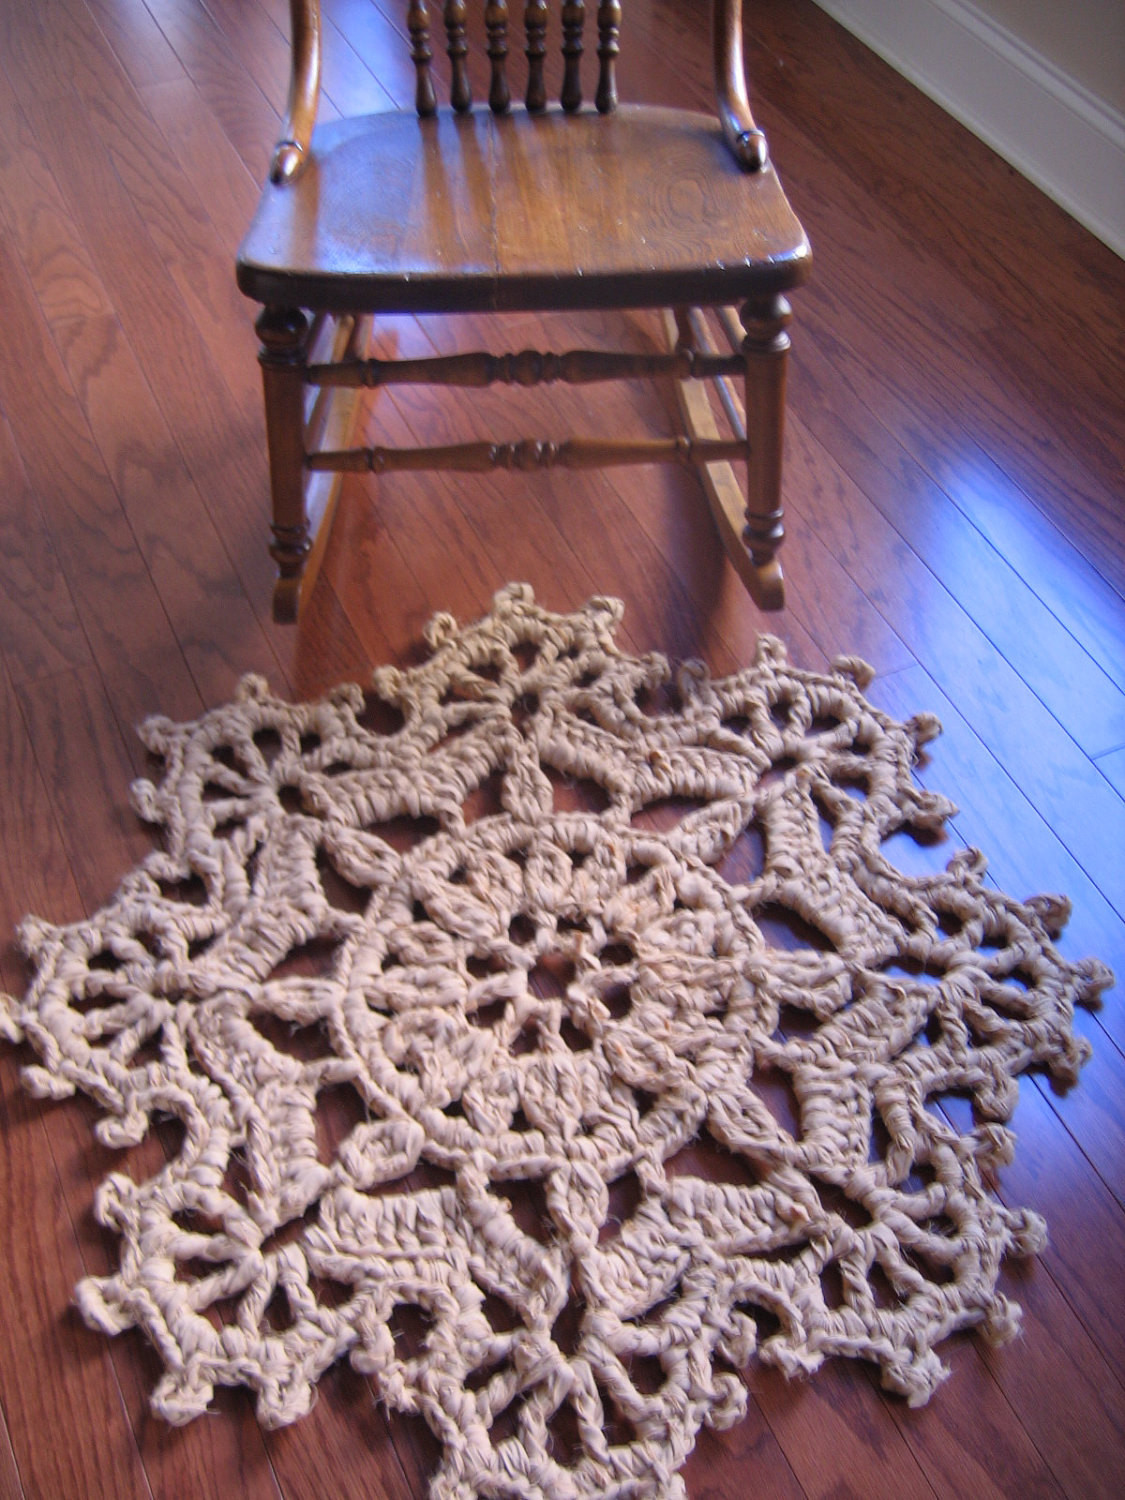 Crochet Rug Patterns Beautiful Rag Crochet Rug Pattern Fans On the Edge by Raggedyanns On Of Amazing 41 Images Crochet Rug Patterns